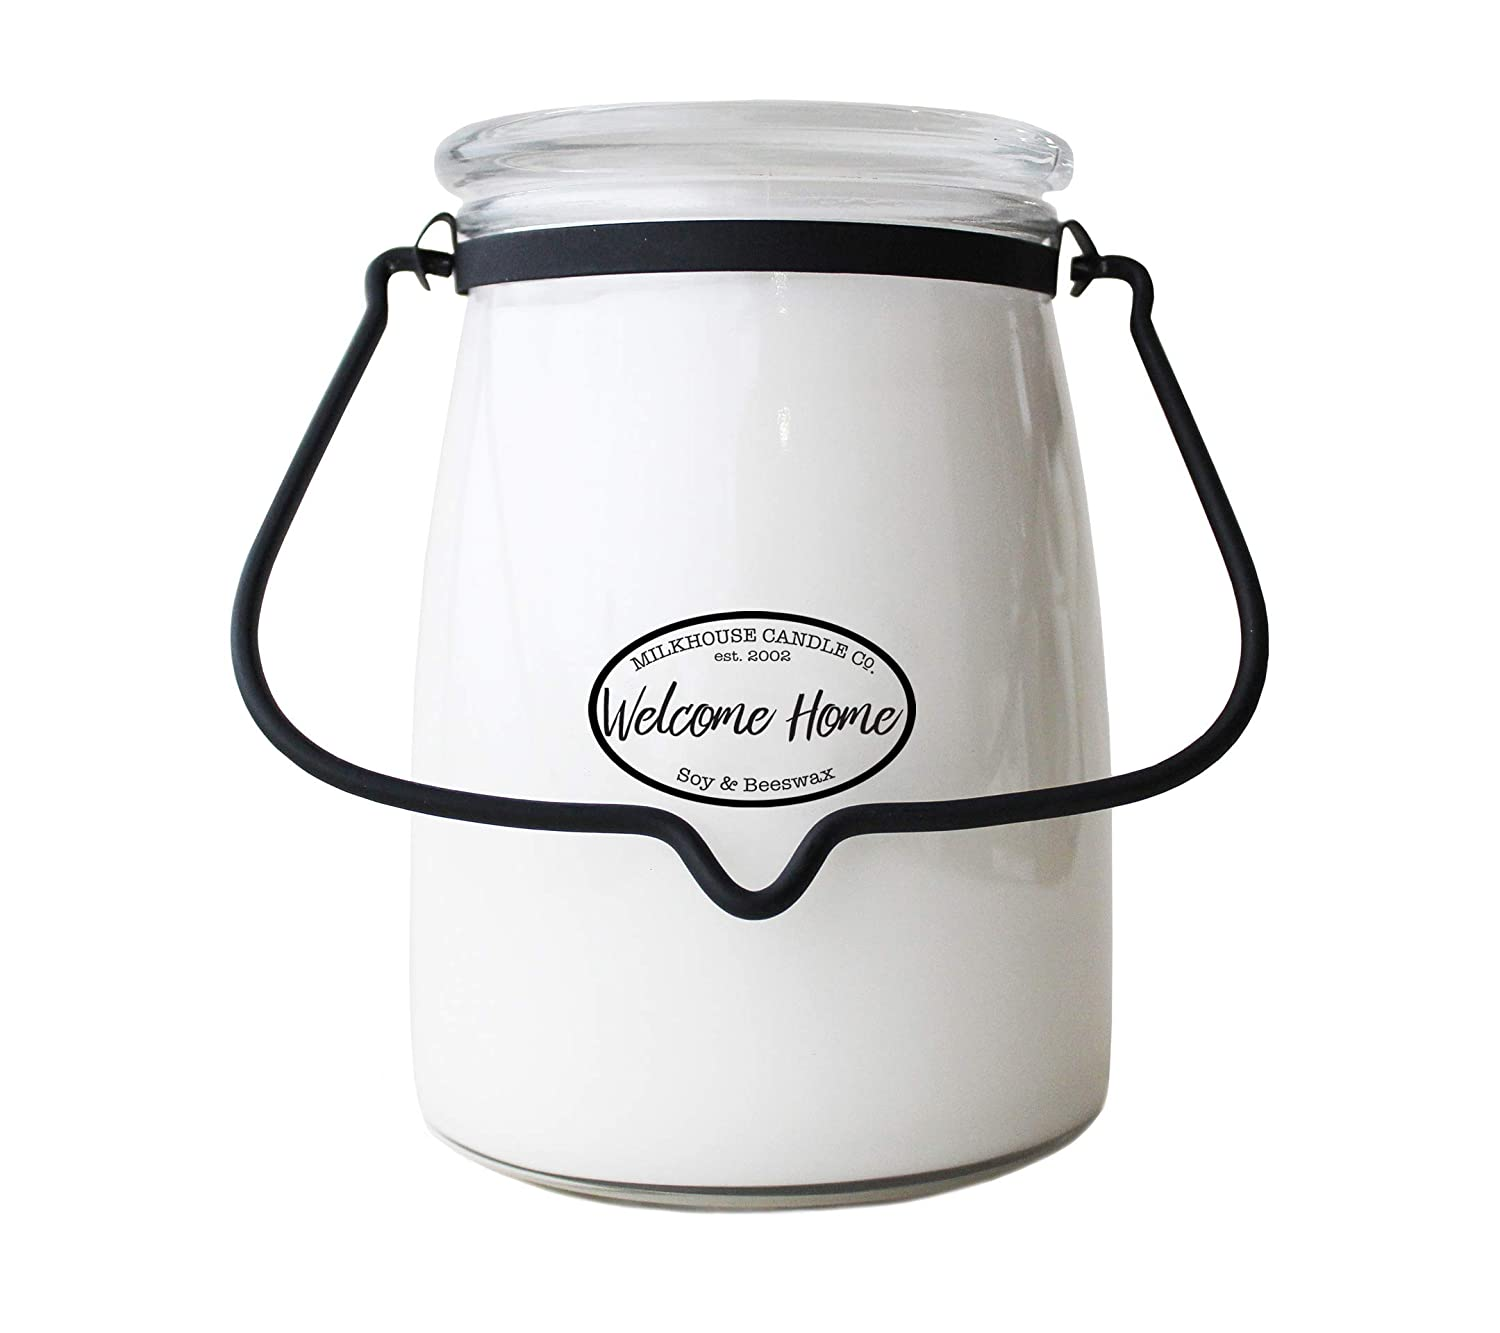 Milkhouse Candle Creamery Scented Soy Candle: Butter Jar Candle, Welcome Home, 22-Ounce